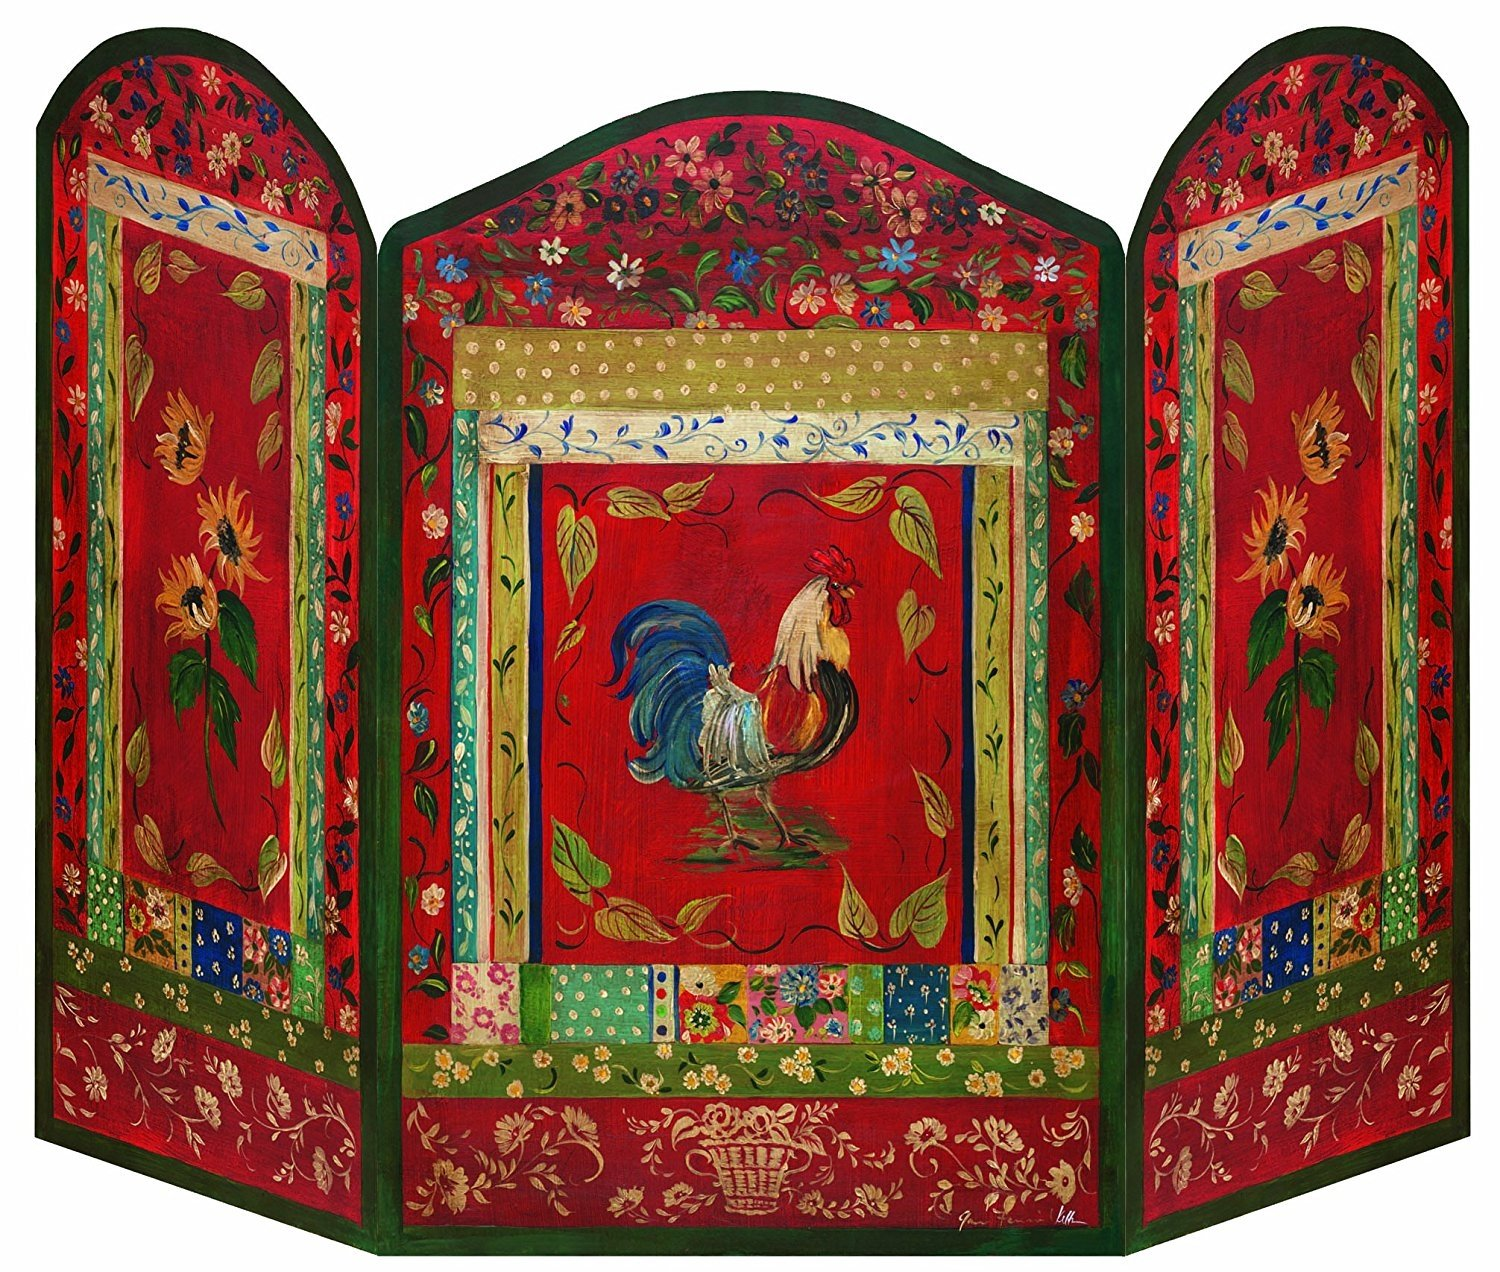 Stupell Home Décor Red Rooster 3-Panel Decorative Fireplace Screen, 44 x 0.5 x 31, Proudly Made in USA by The Stupell Home Decor Collection